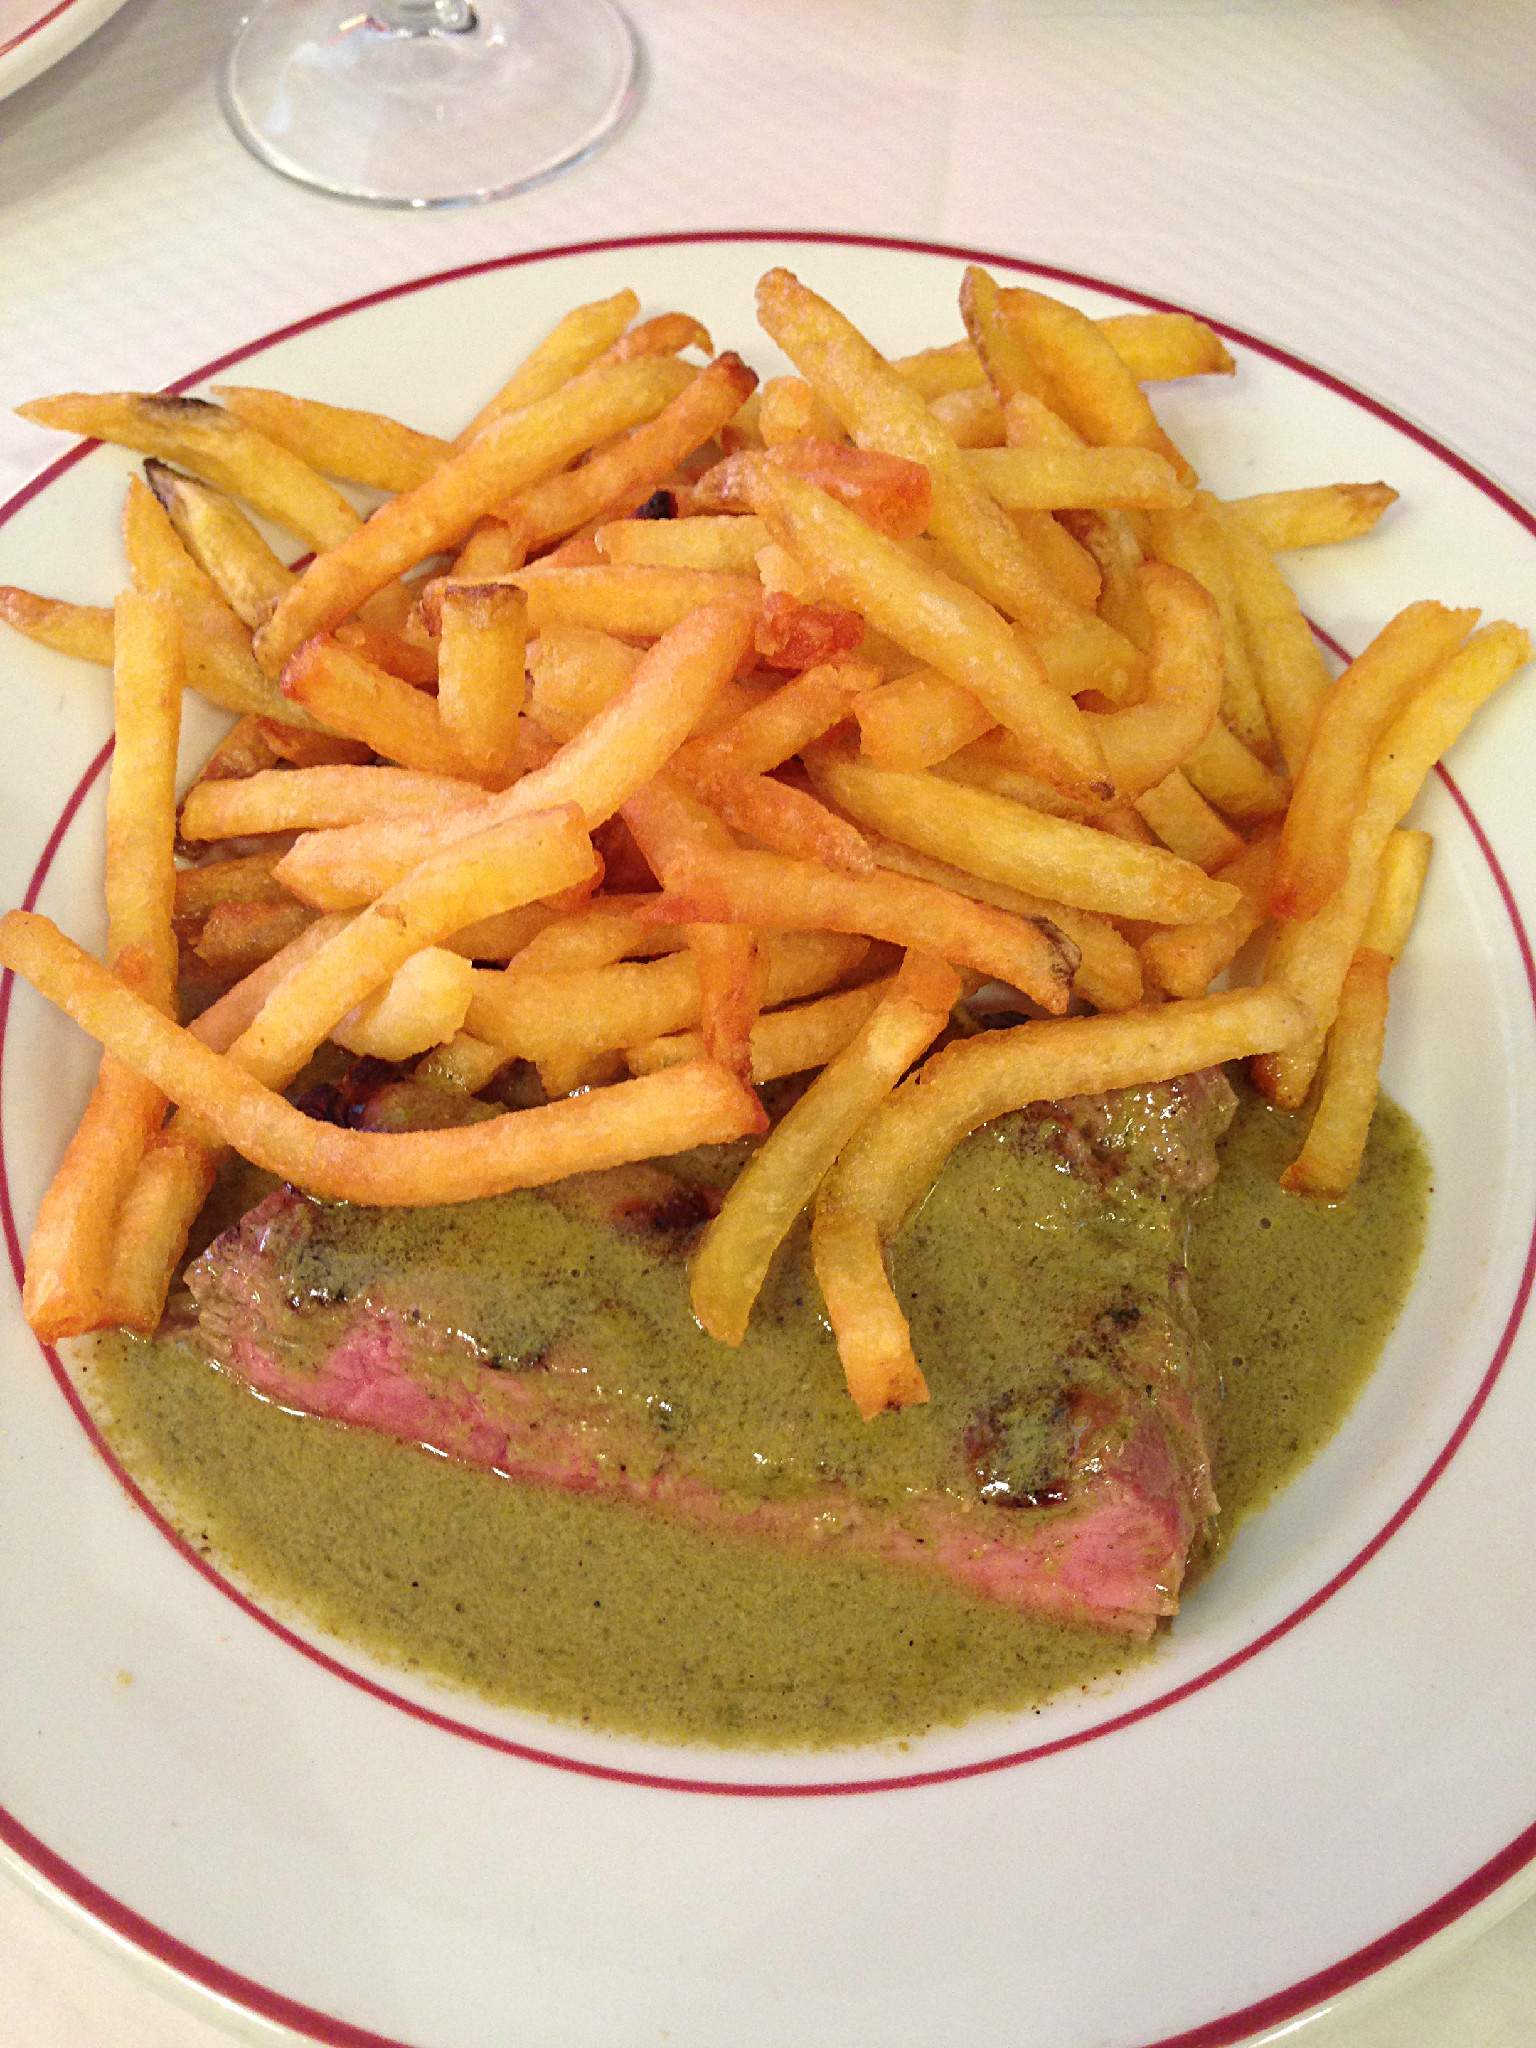 The famous steak and fries!